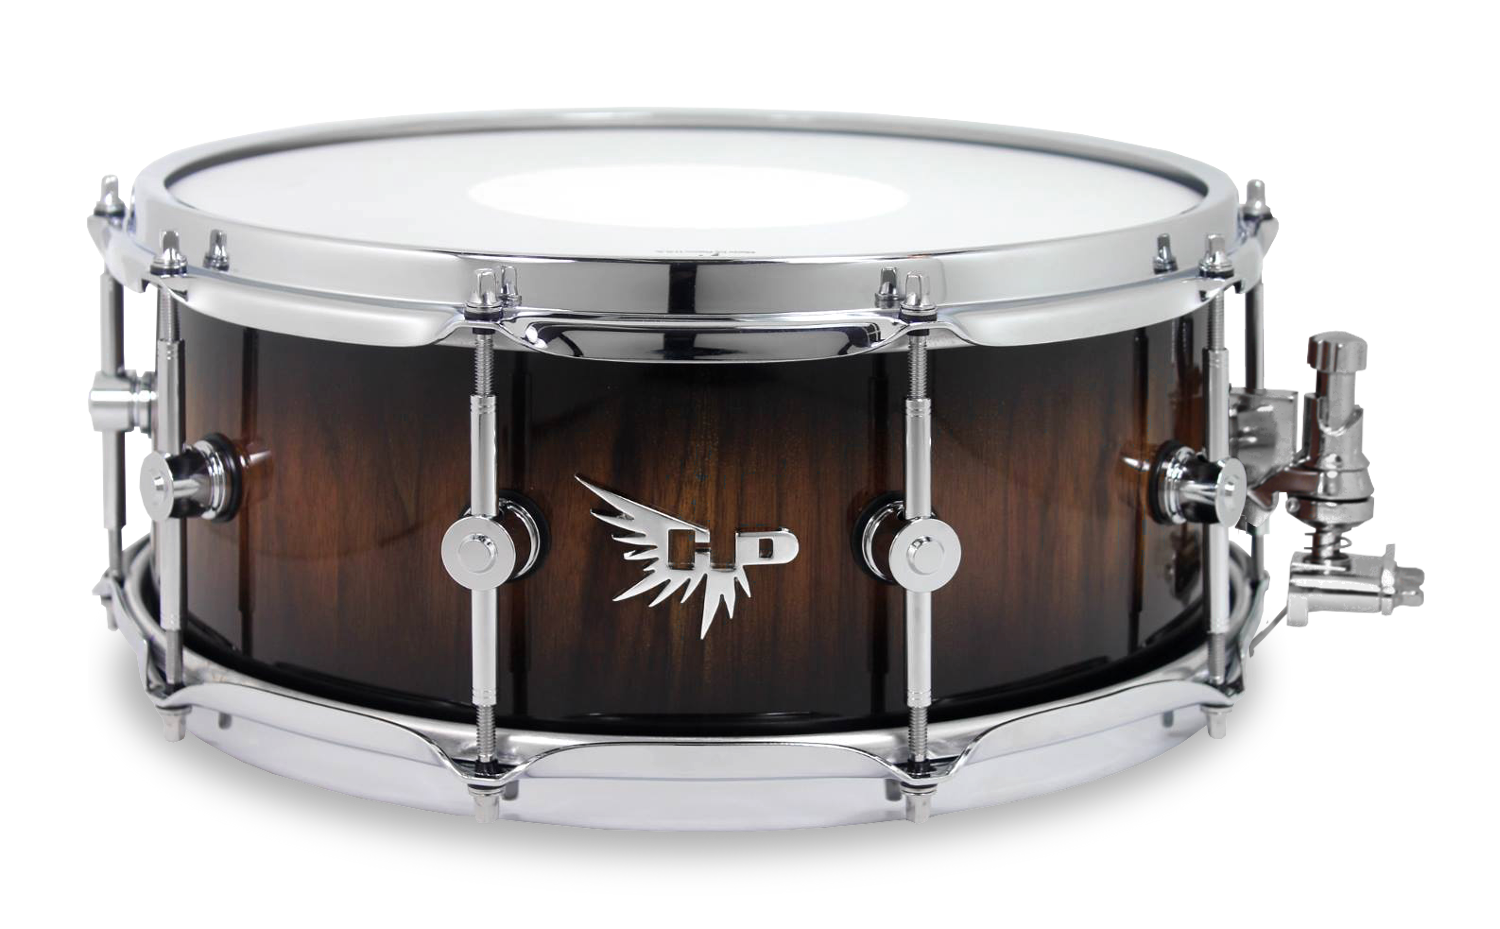 graphic free download Drums PNG Image